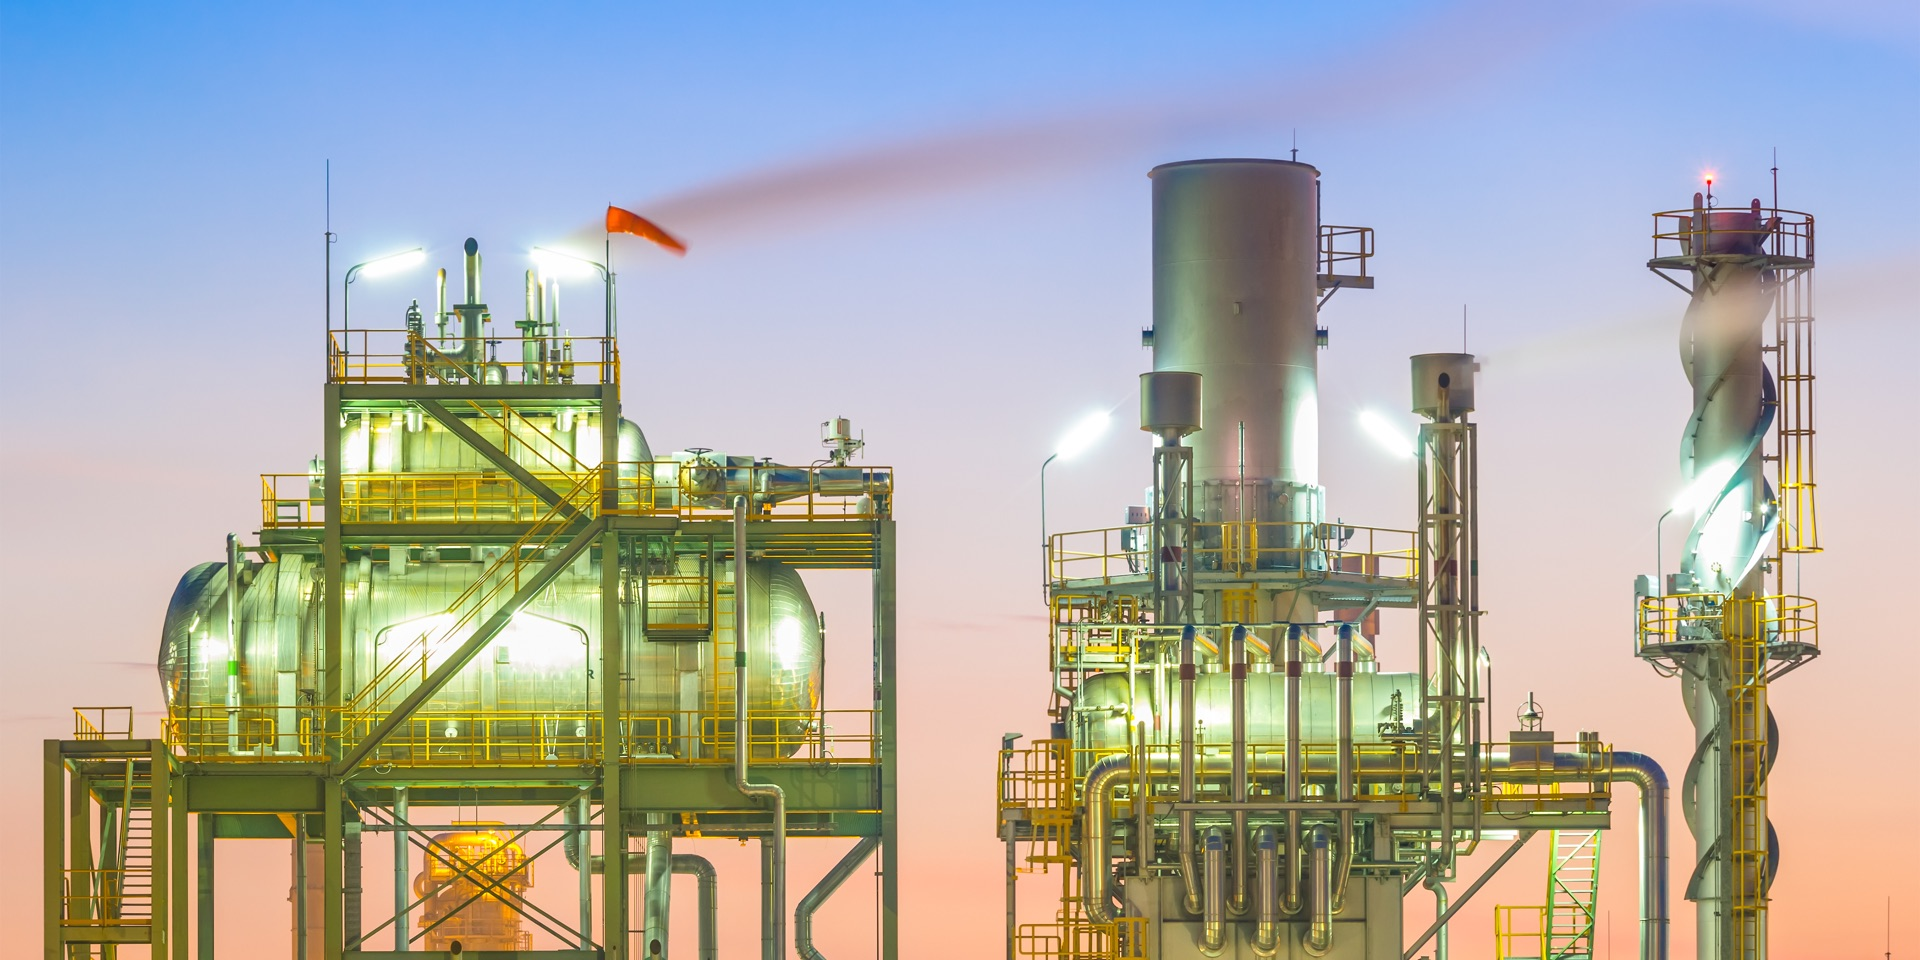 Self-Benchmarking in Maintenance of a Chemical Plant